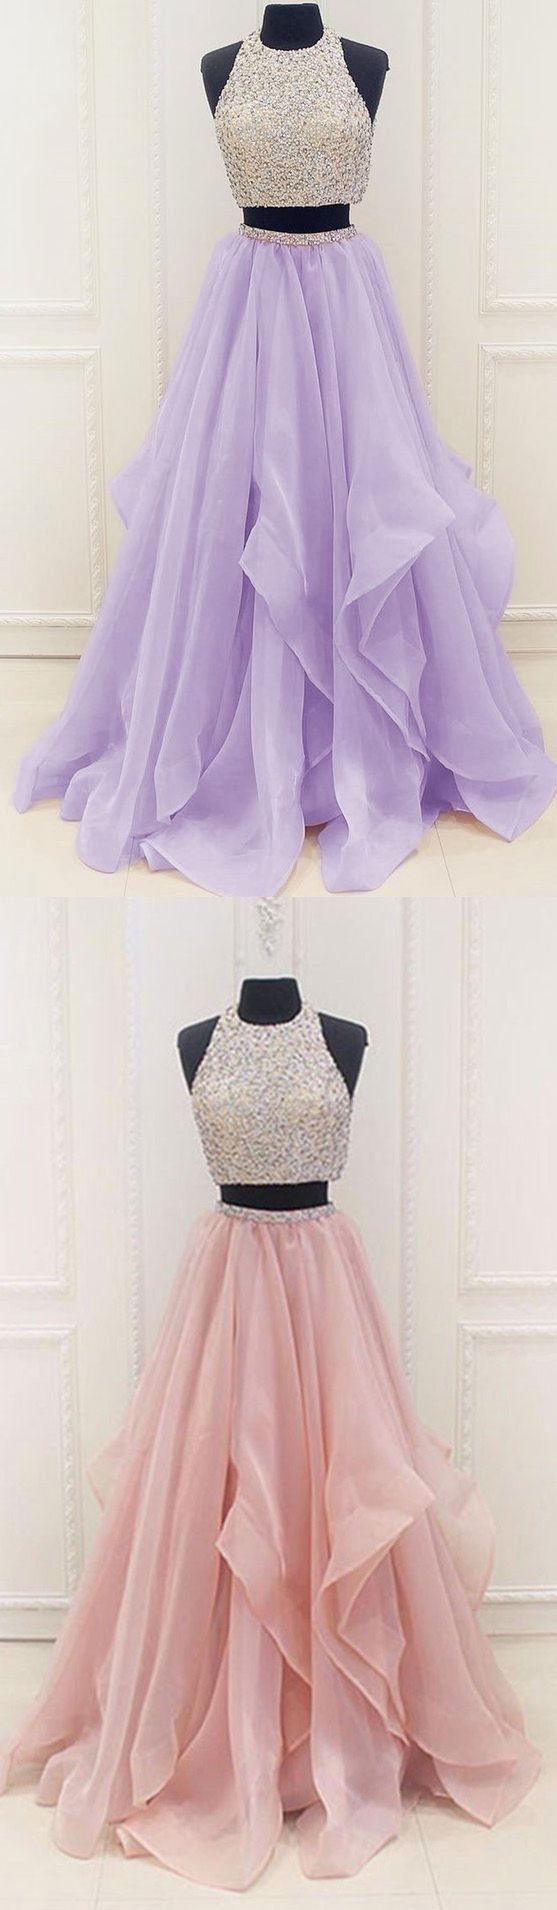 Two Pieces Prom Dress 2017, Halter Prom Dress, Ball Gown, Graduation Dresses, Formal Dress For Teens